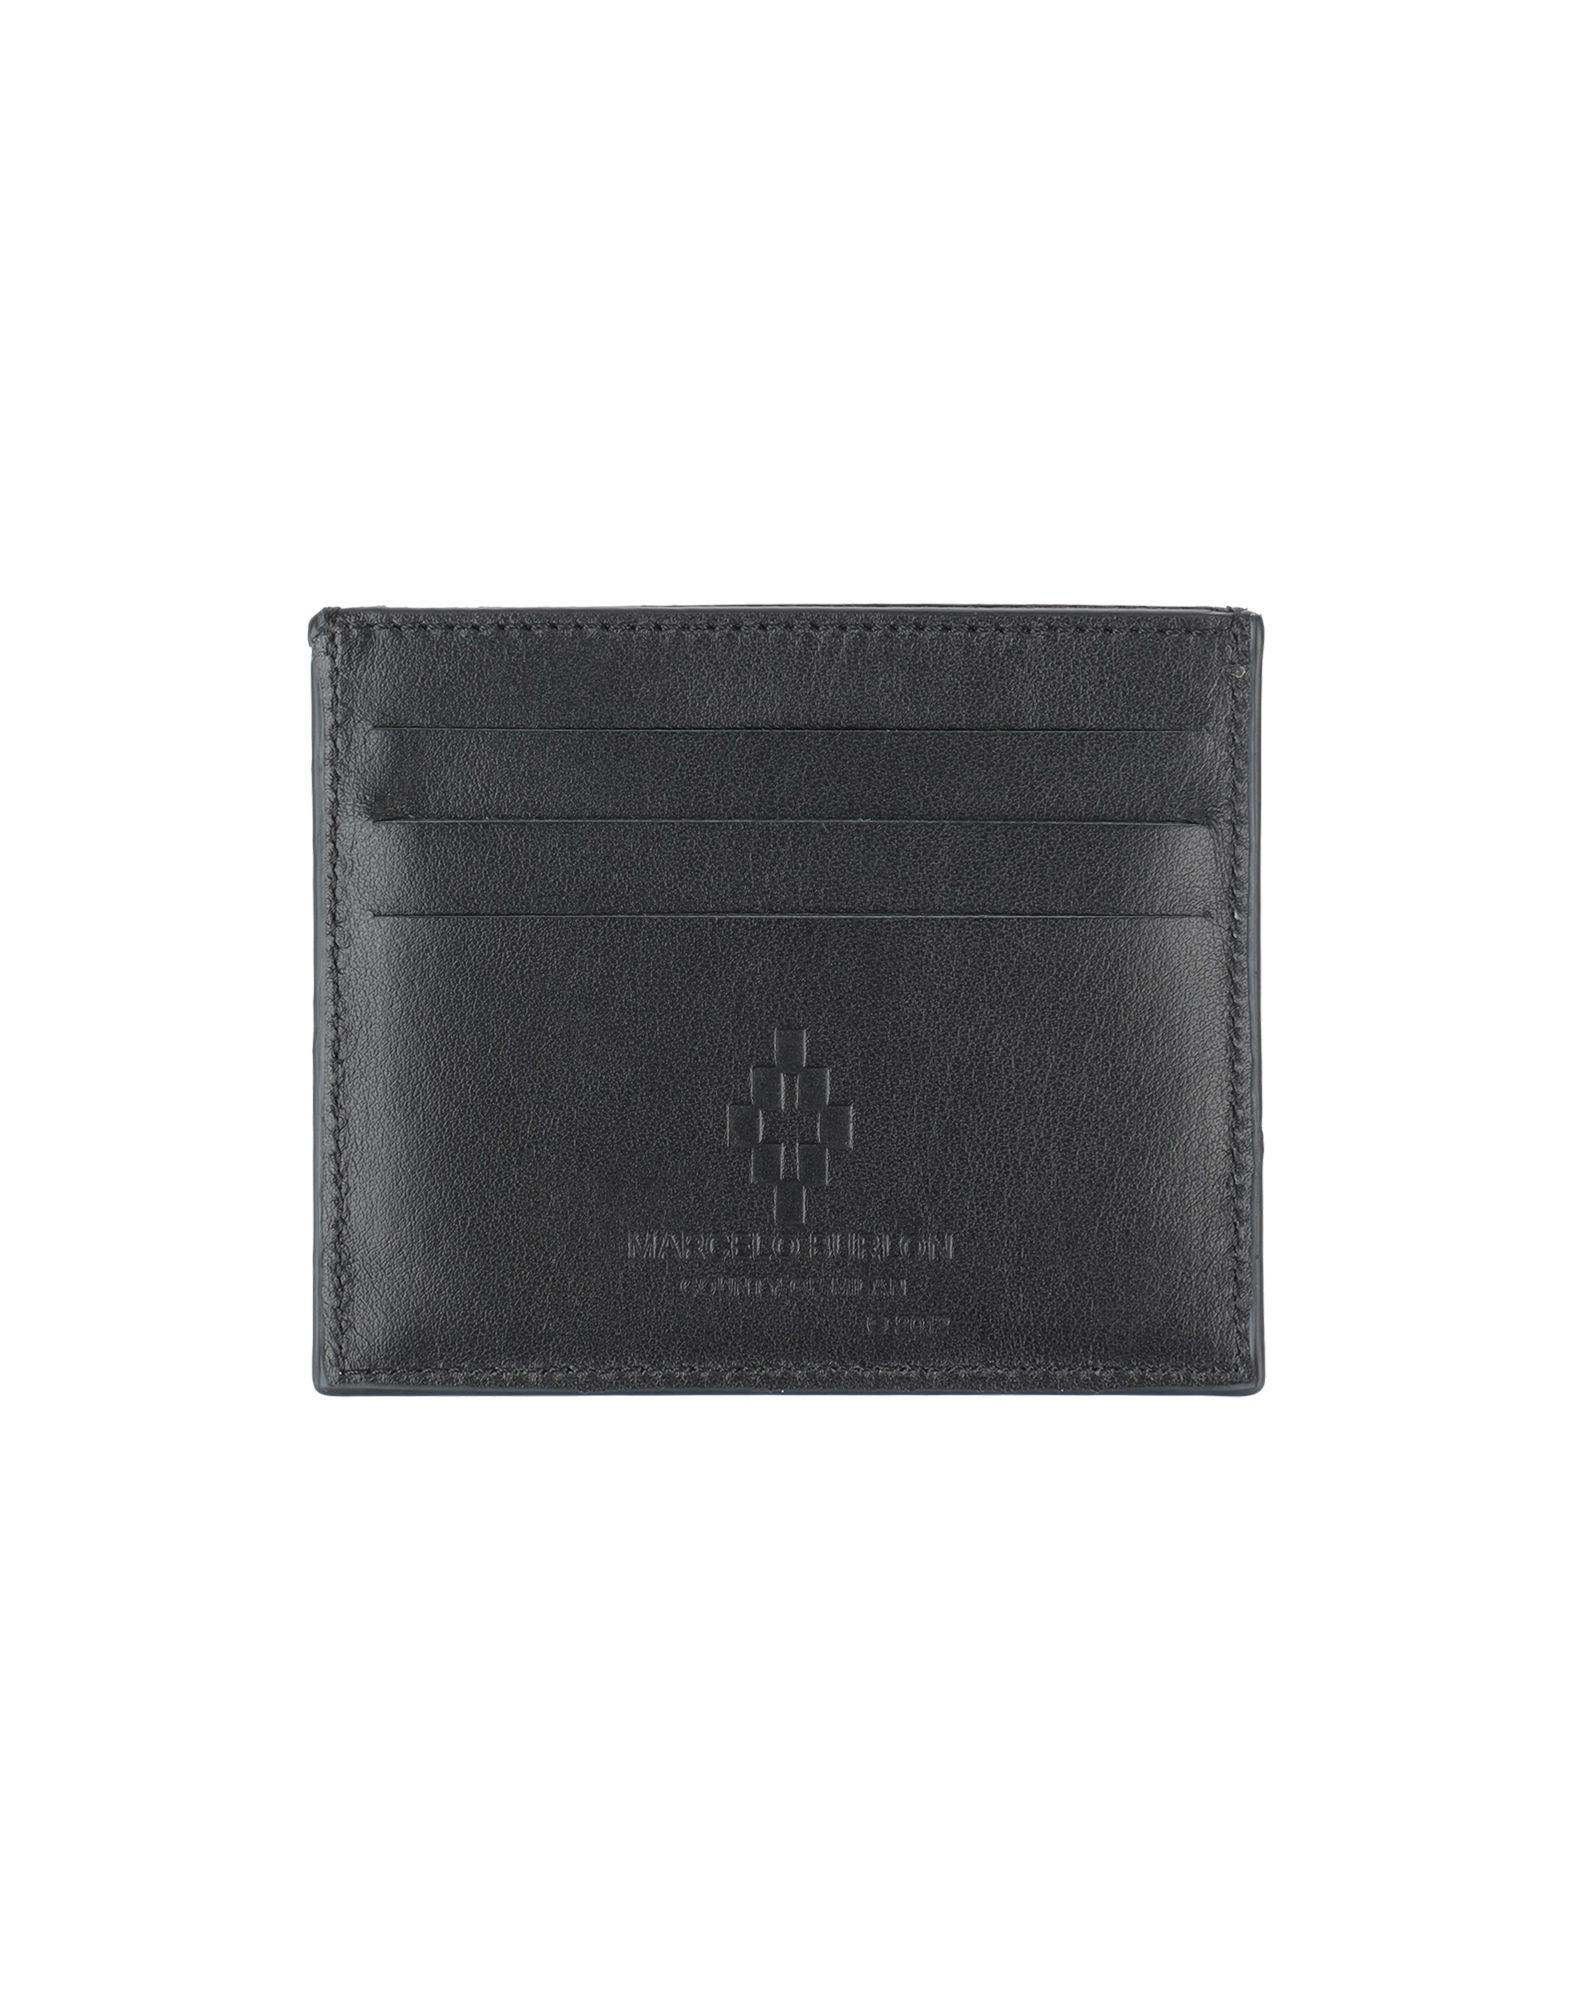 MARCELO BURLON Document holders. leather, logo, print, solid color, internal card slots, contains non-textile parts of animal origin. Soft Leather